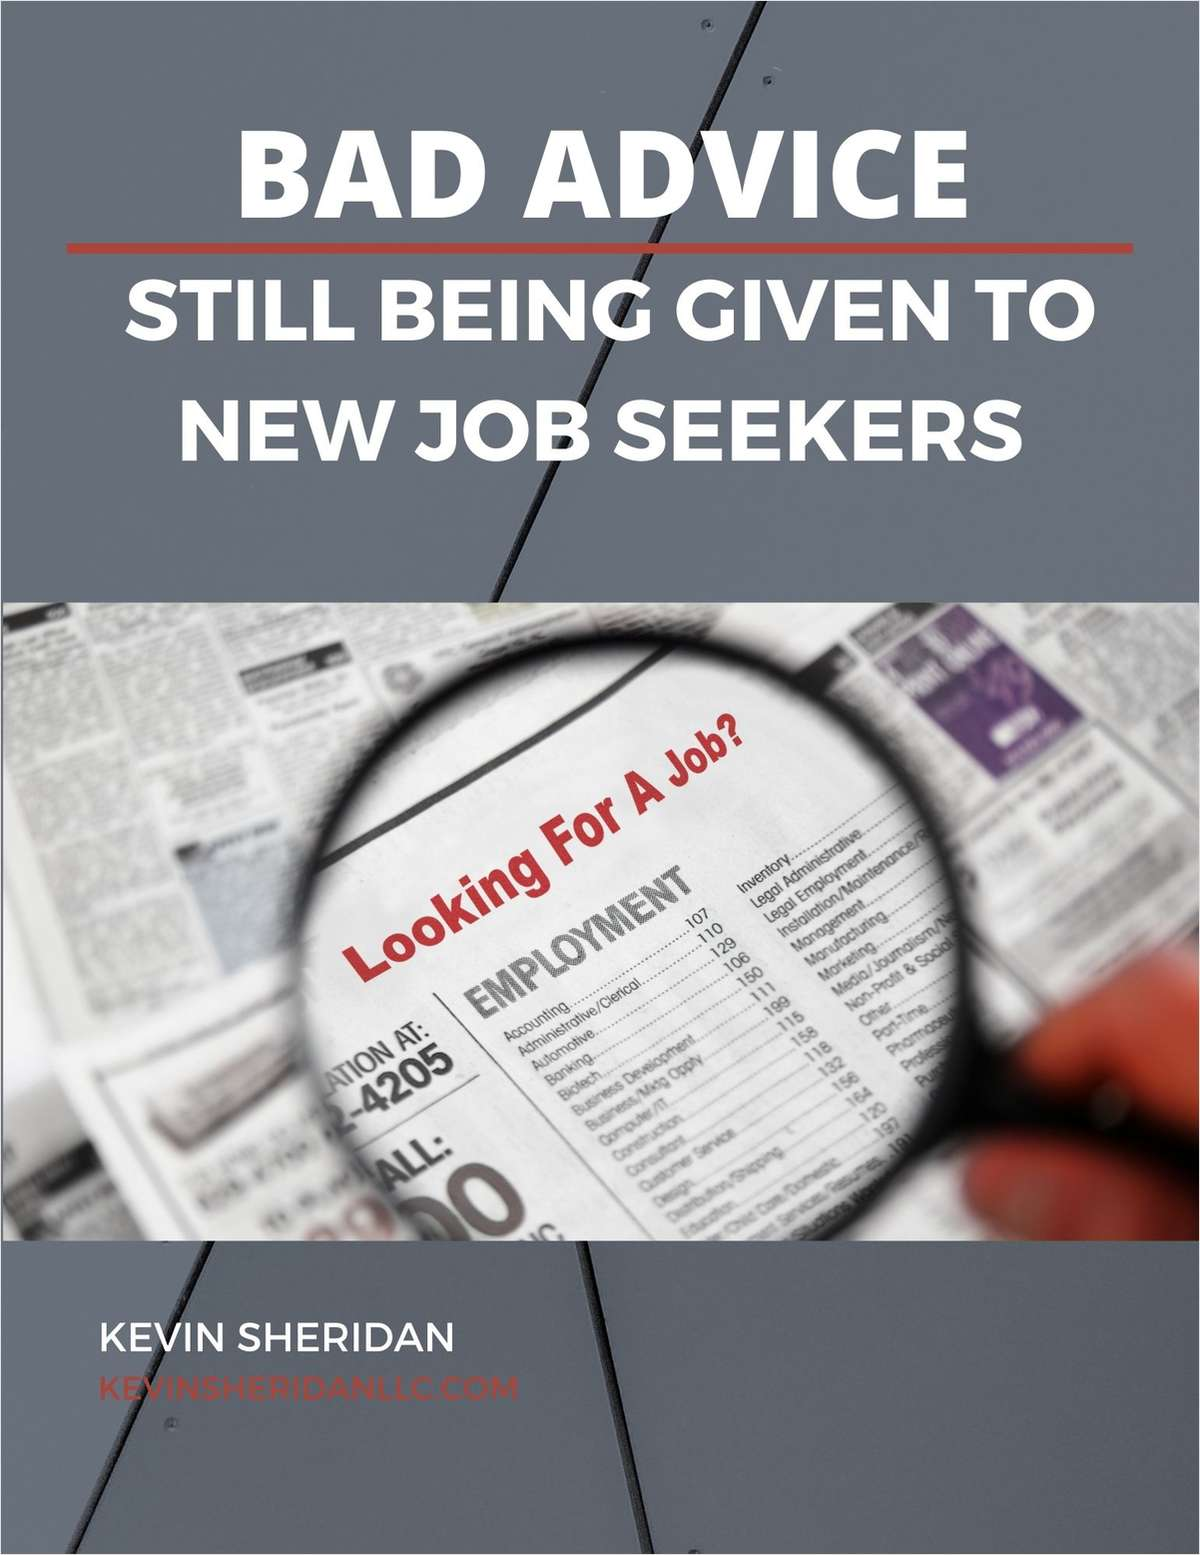 Bad Advice Still Being Given To New Job Seekers